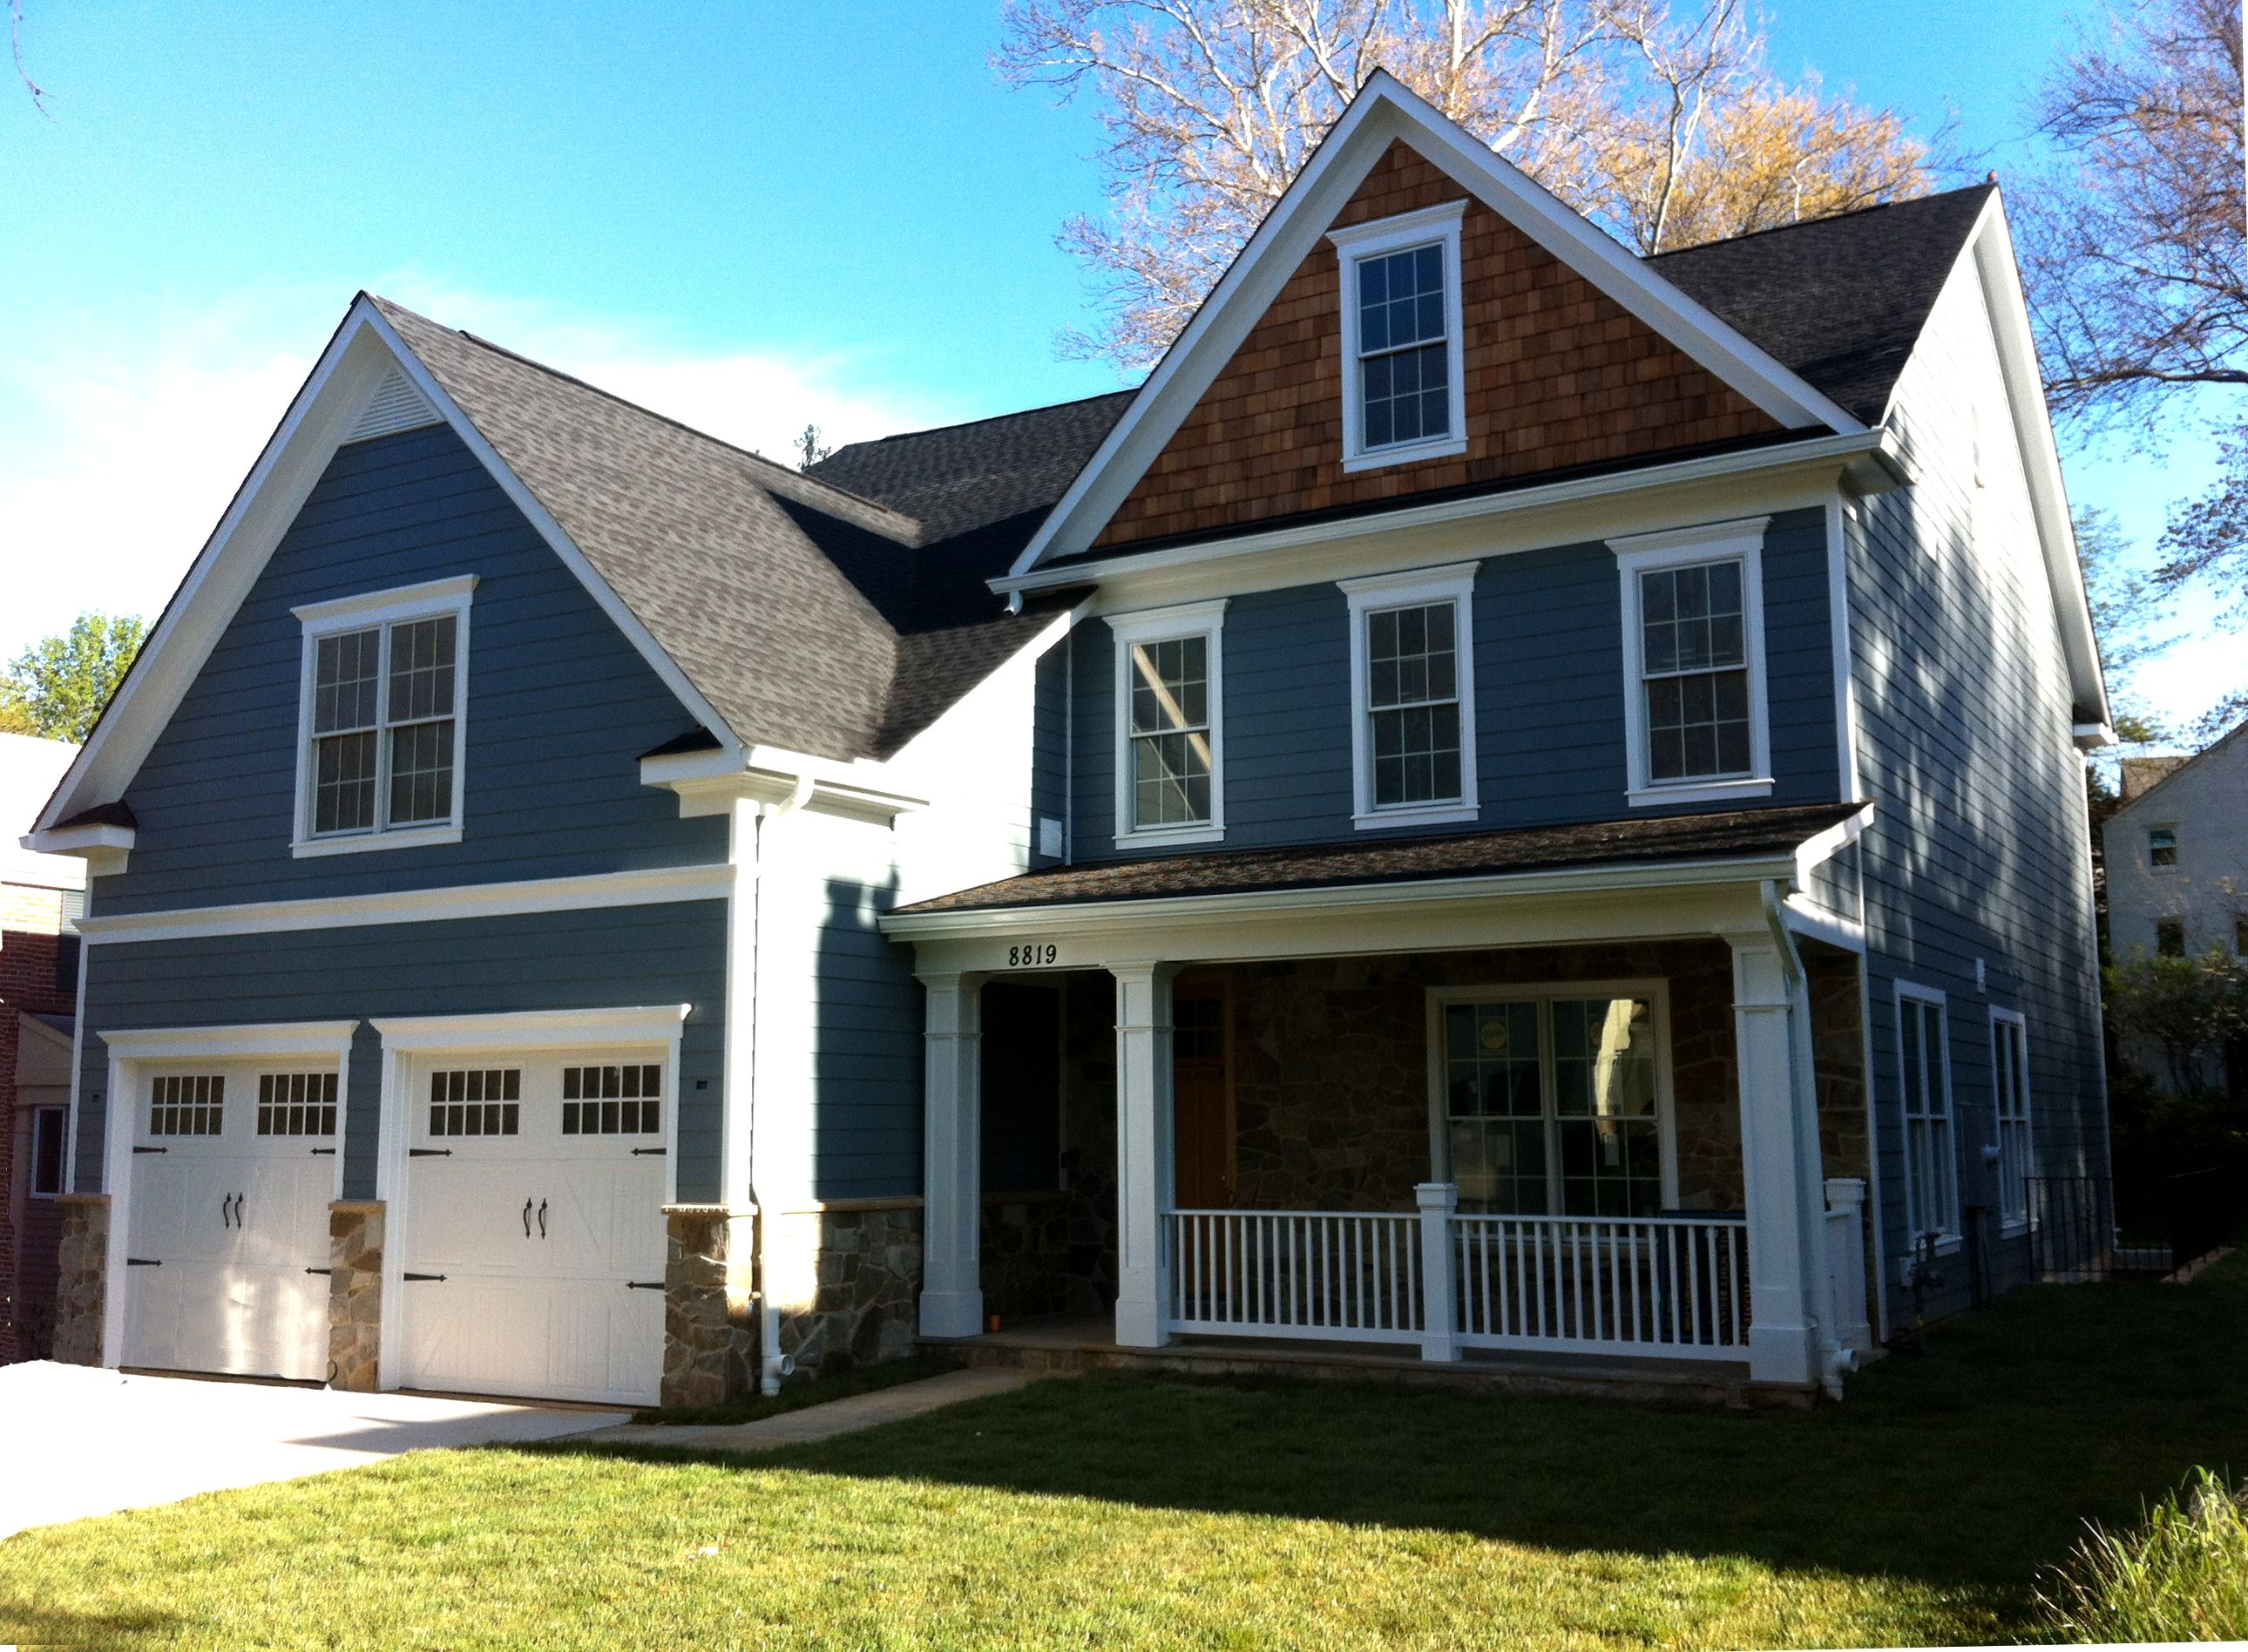 This Bethesda Home Features Har Plank Siding Falcon Mist Stone And Cedar Shake Accent In The Dormer